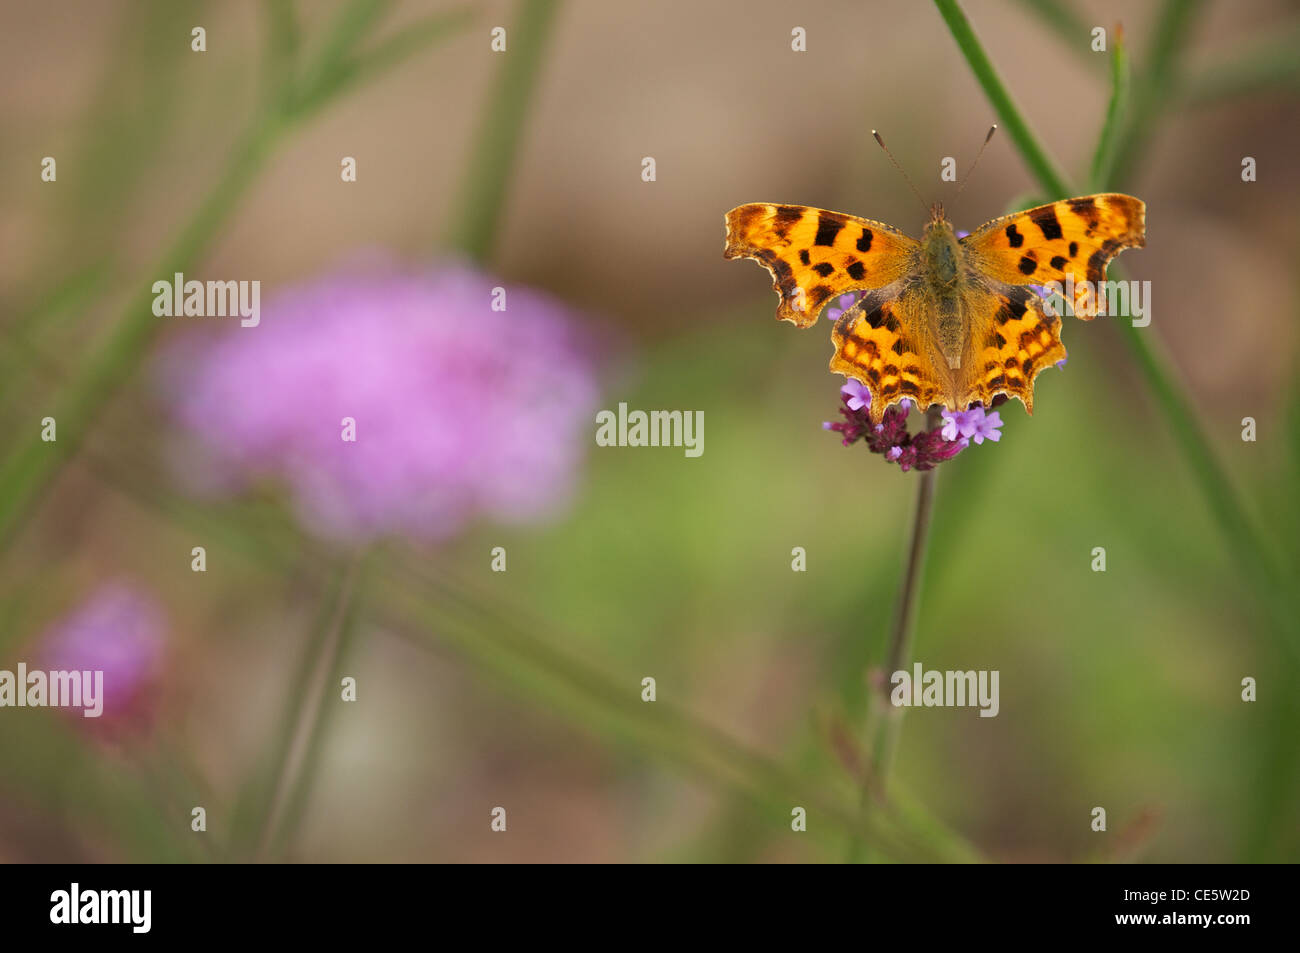 Comma butterfly feeding on verbena flowers in an English summer garden. - Stock Image